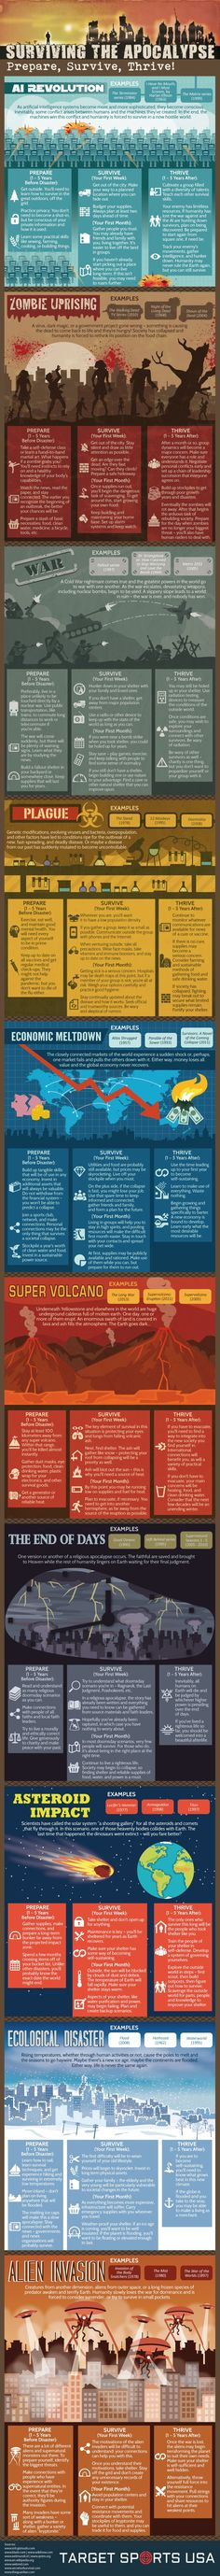 How to survive different types of apocalypse - Imgur